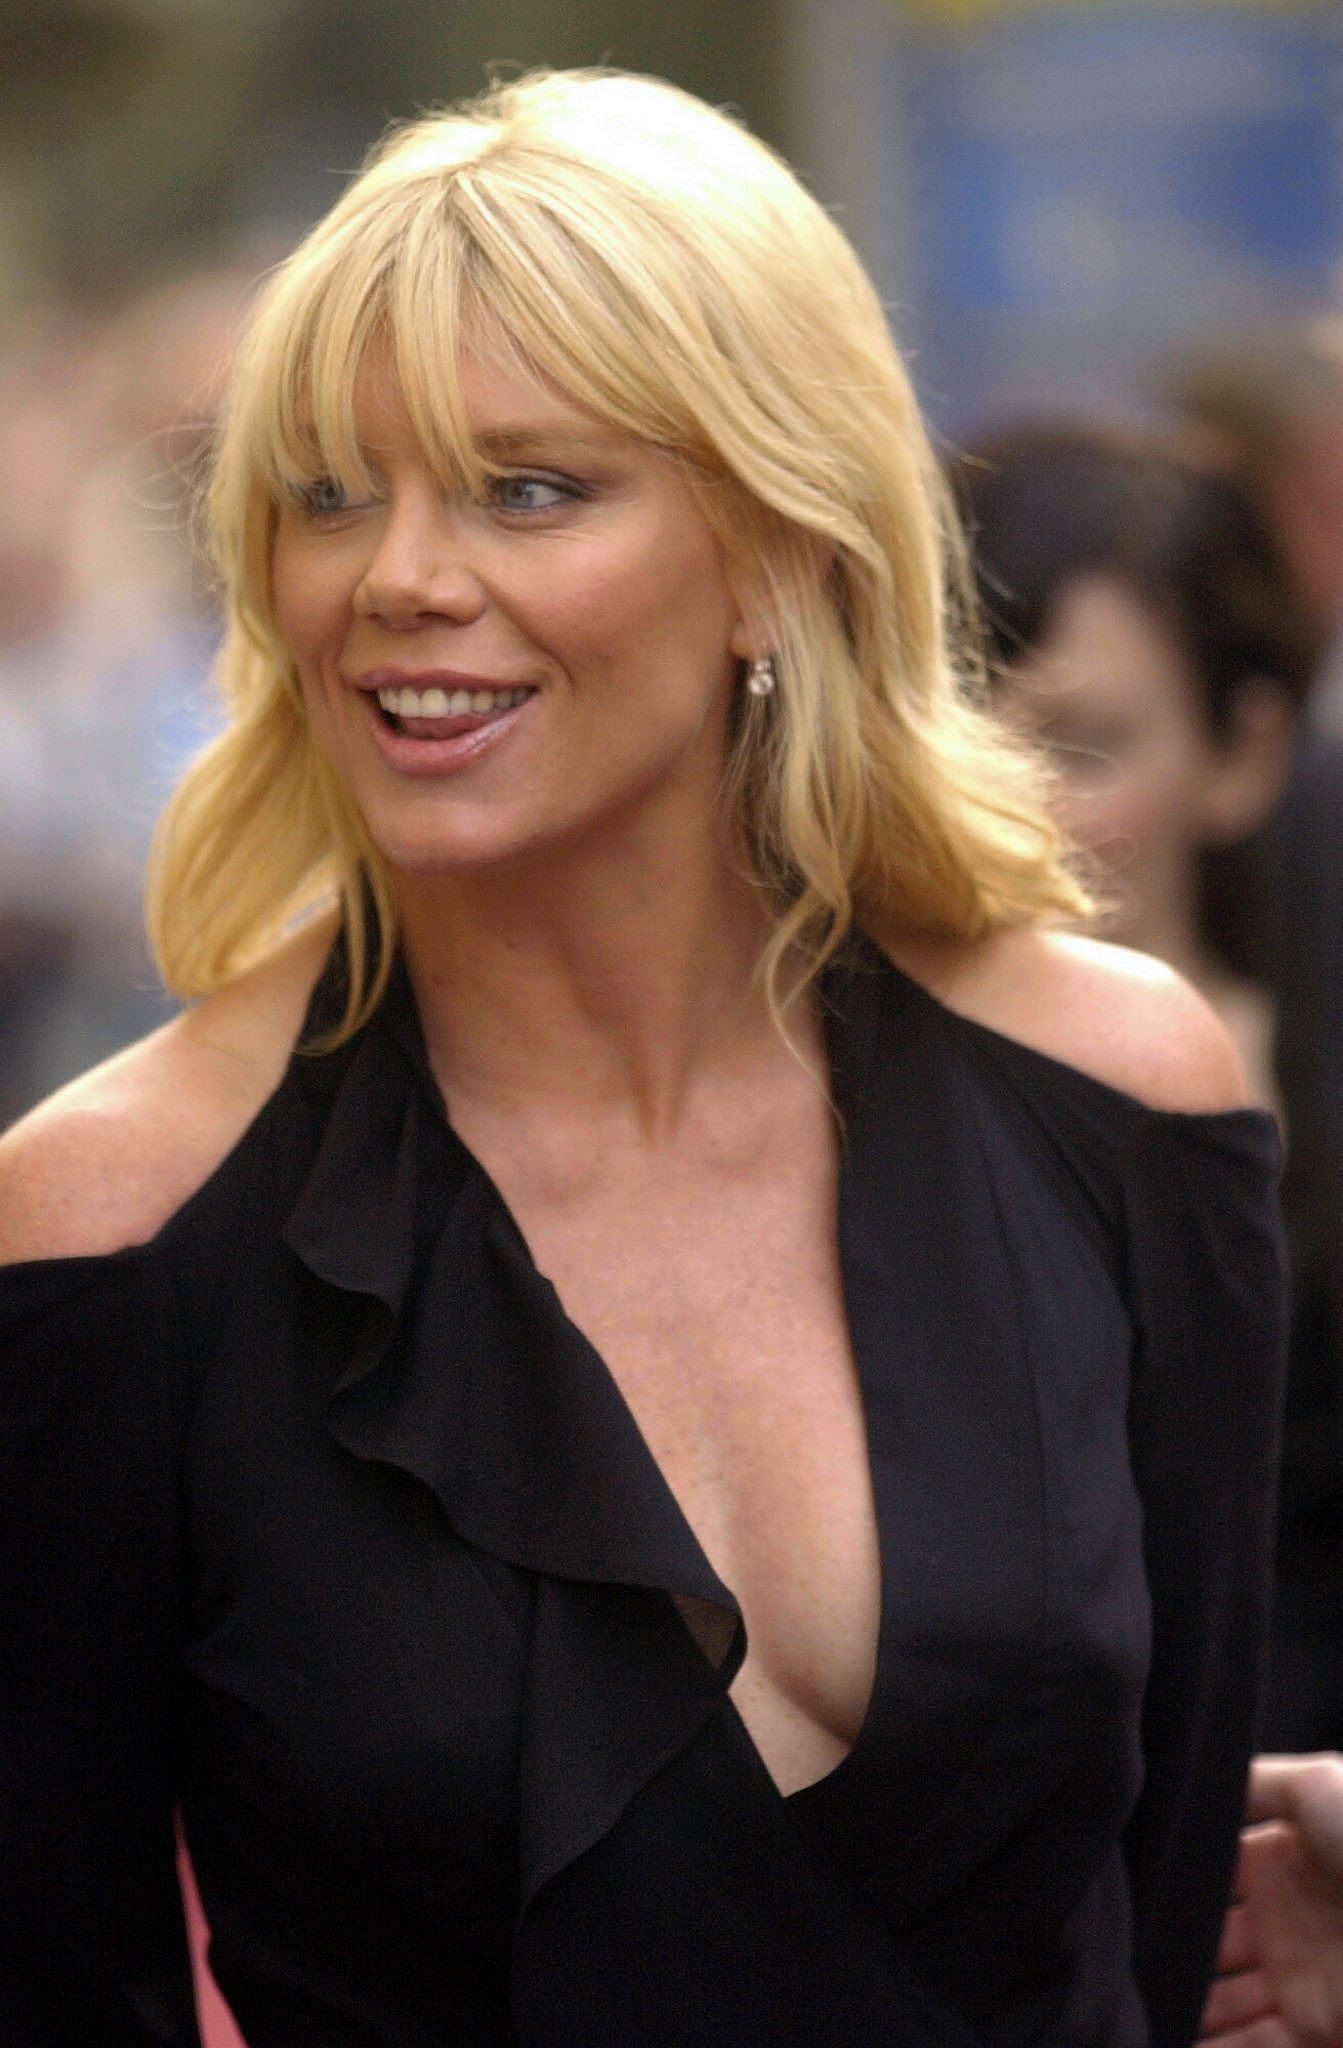 peta wilson photo 2 of 62 pics wallpaper   photo 8223